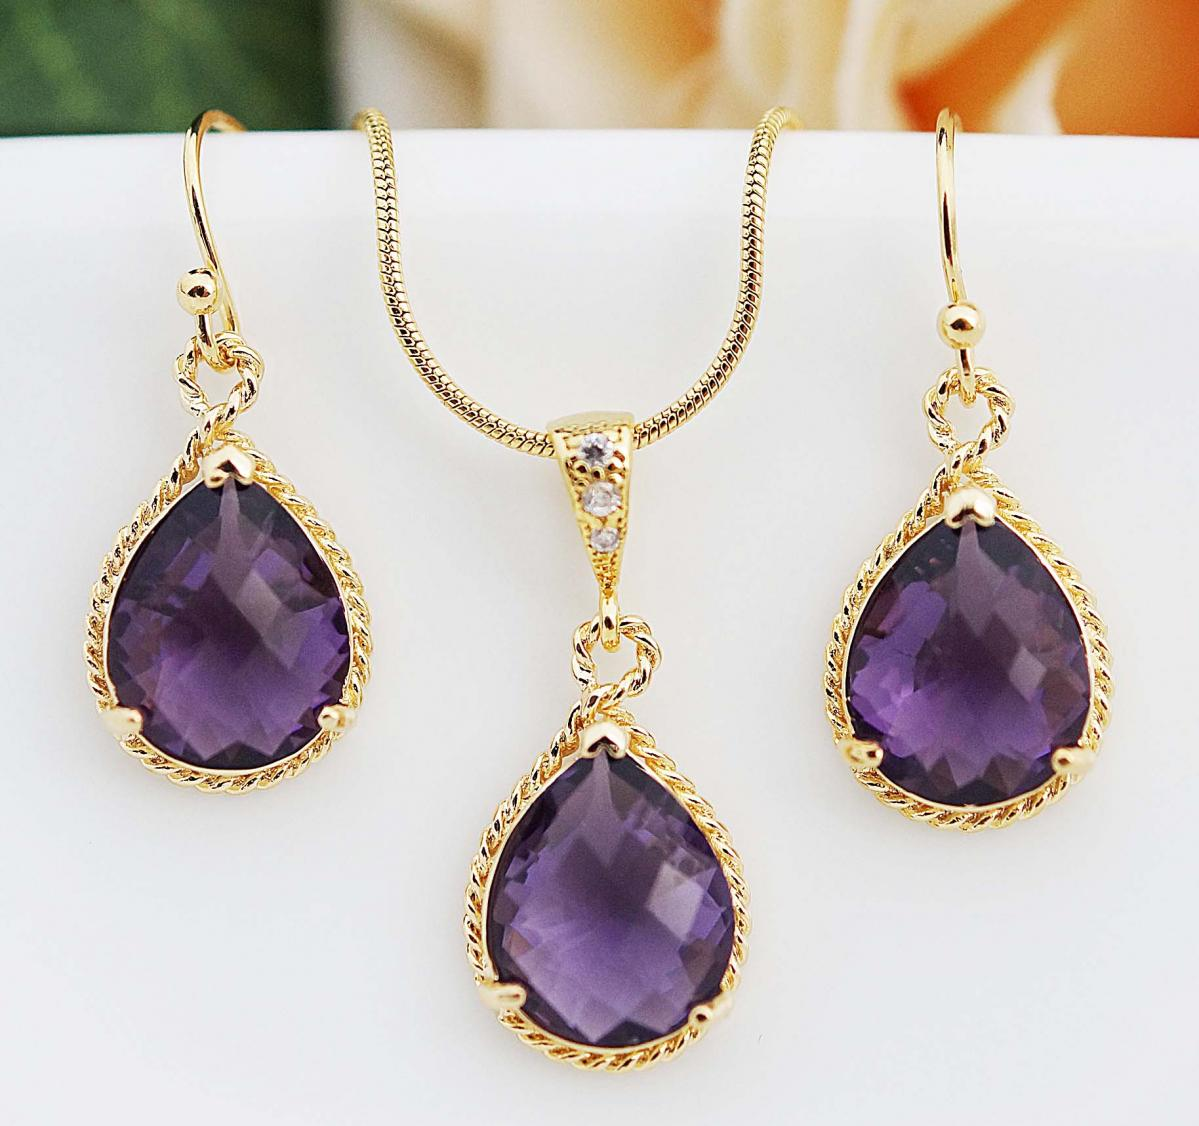 Wedding Jewelry Bridesmaid Jewelry Bridesmaid Earrings Bridesmaid Necklace Amethyst Glass Gold Trimmed Pear Cut Bridesmaid gift